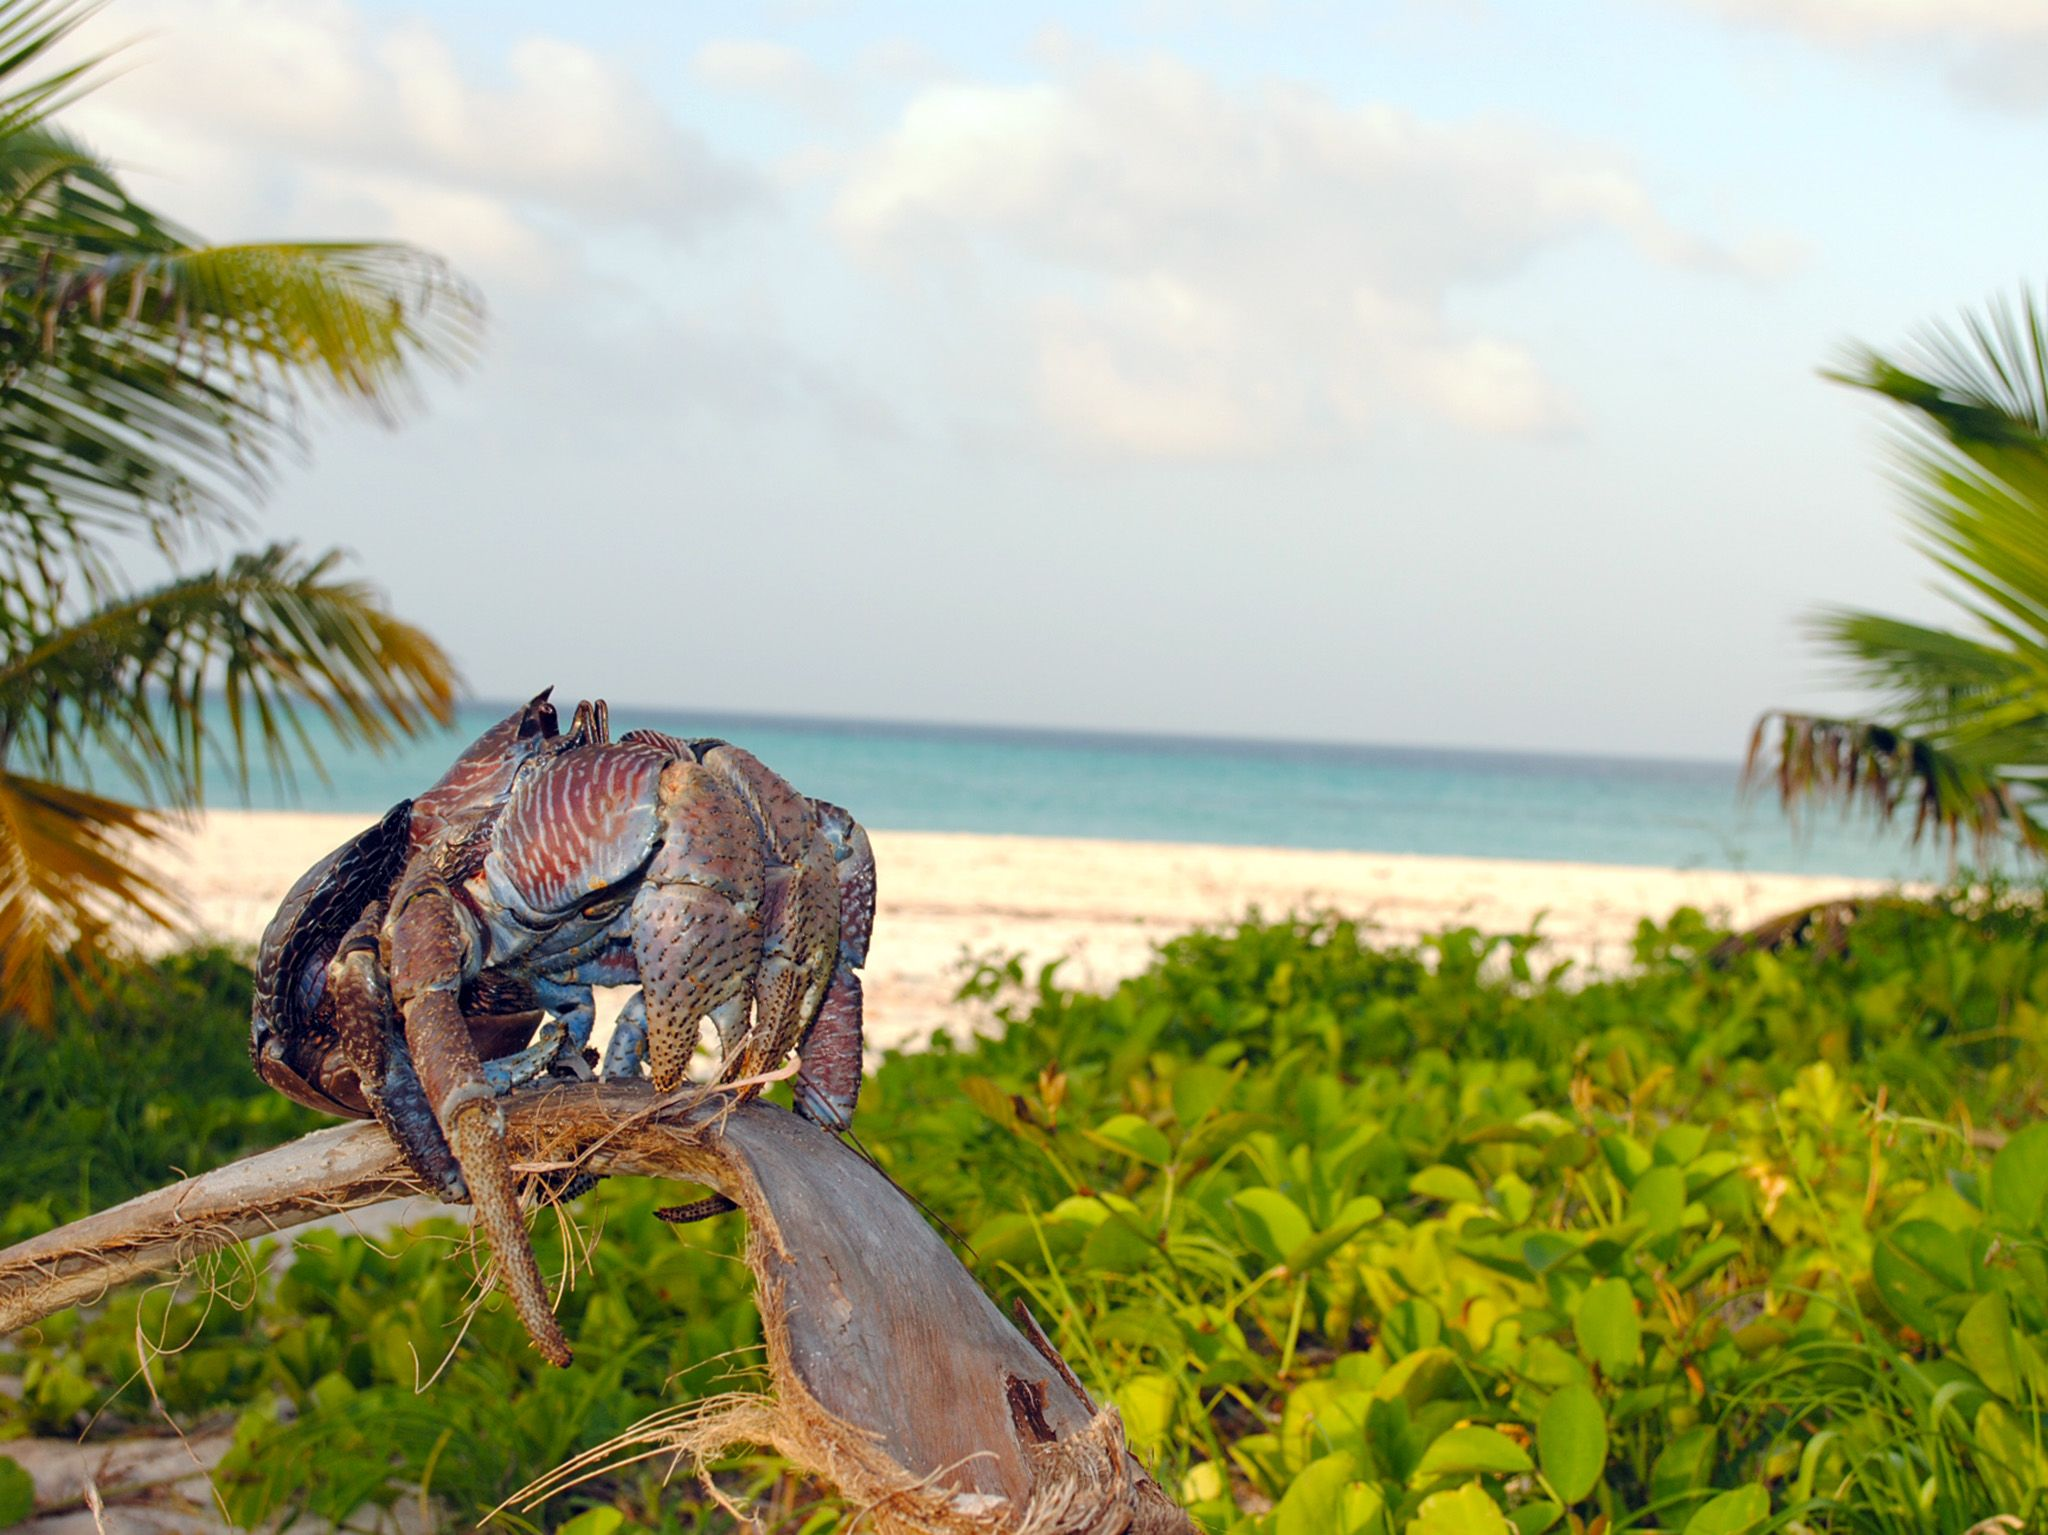 Fanjove Island, Tanzania:  A coconut crab on a palm branch.  This image is from Jane Goodall:... [Foto del giorno - aprile 2018]